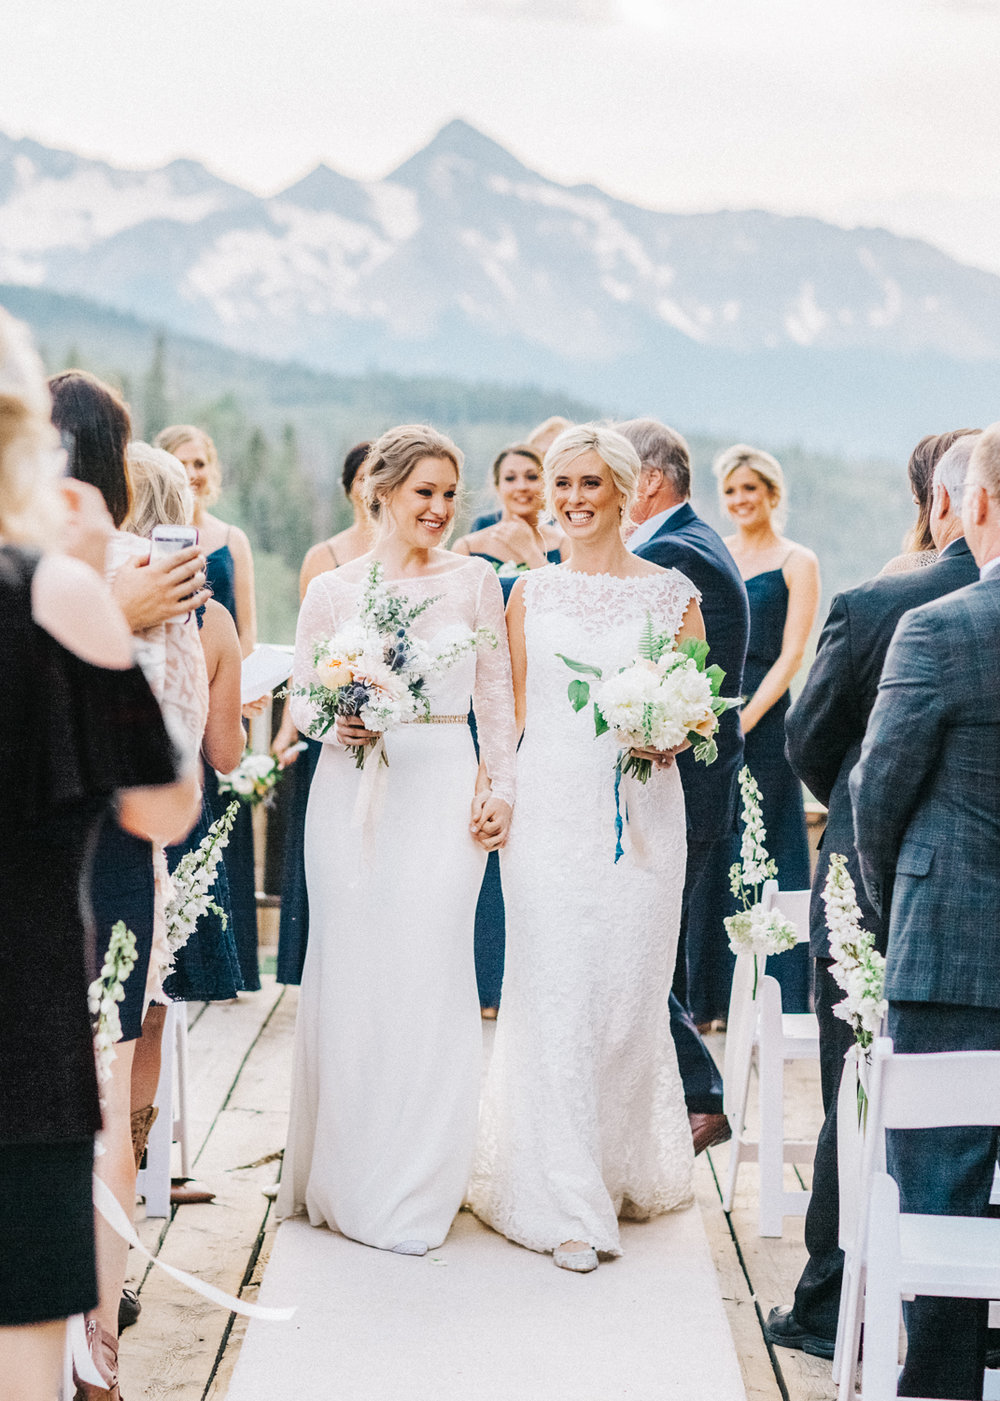 Destination Gay Wedding in Telluride